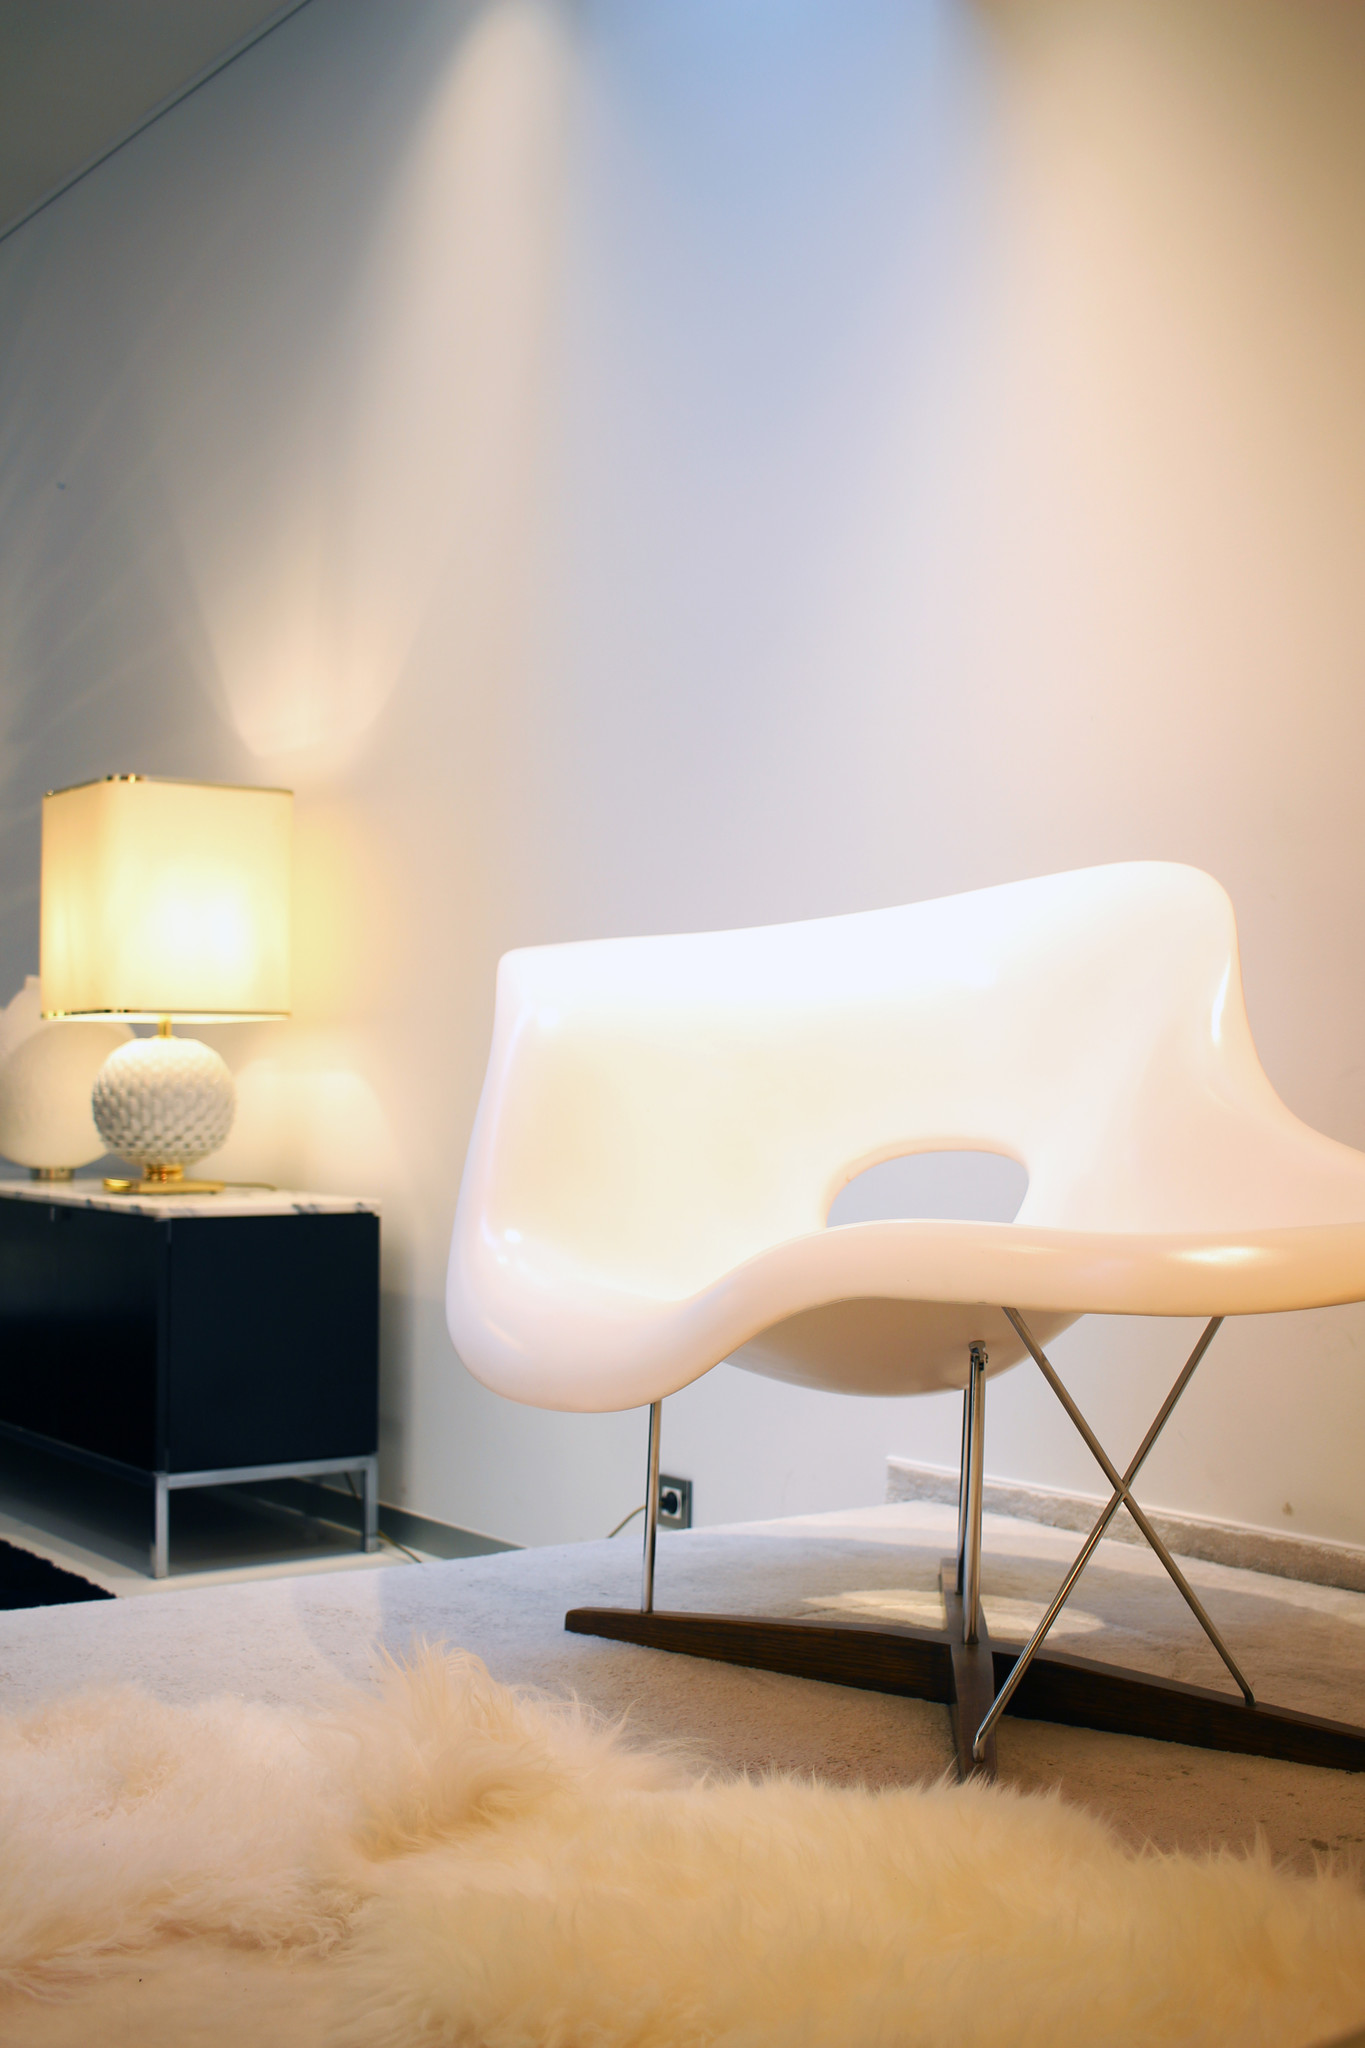 La Chaise by Charles & Ray Eames for Vitra